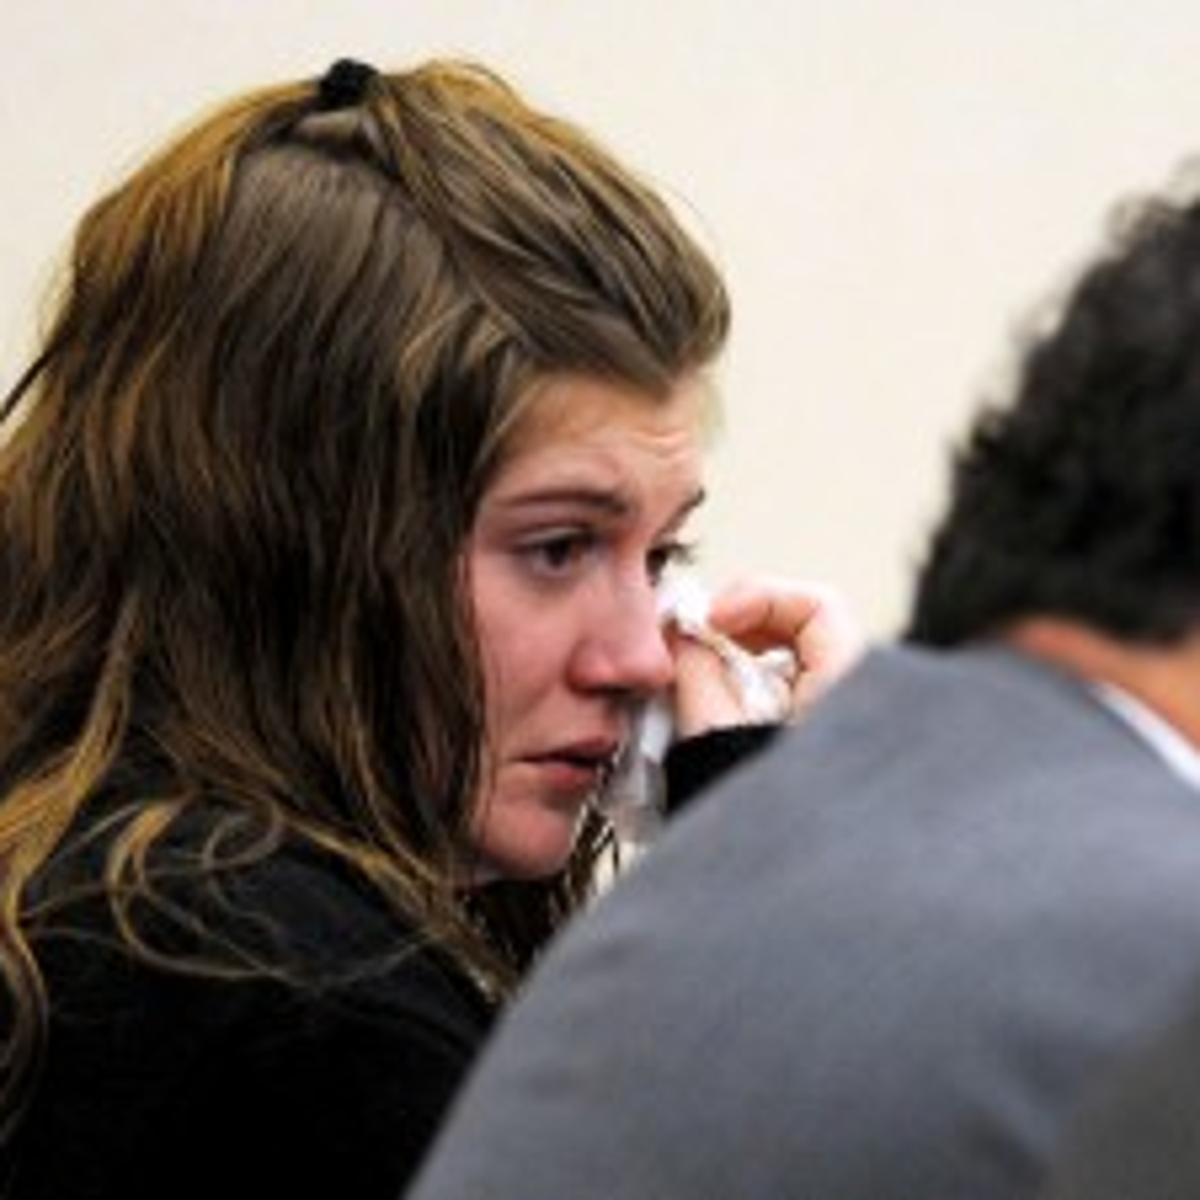 Kalispell woman who killed mom, child in head-on crash granted